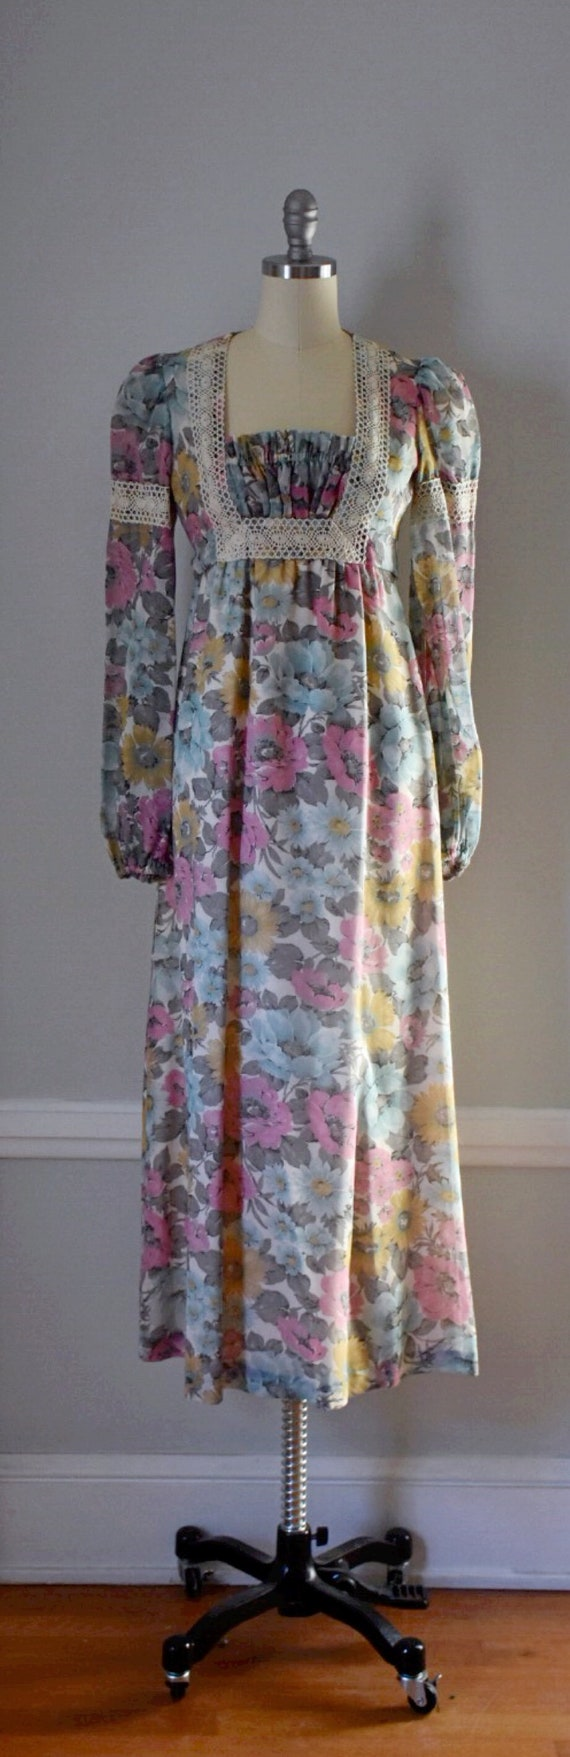 Vintage 70s Prairie Dress - image 3